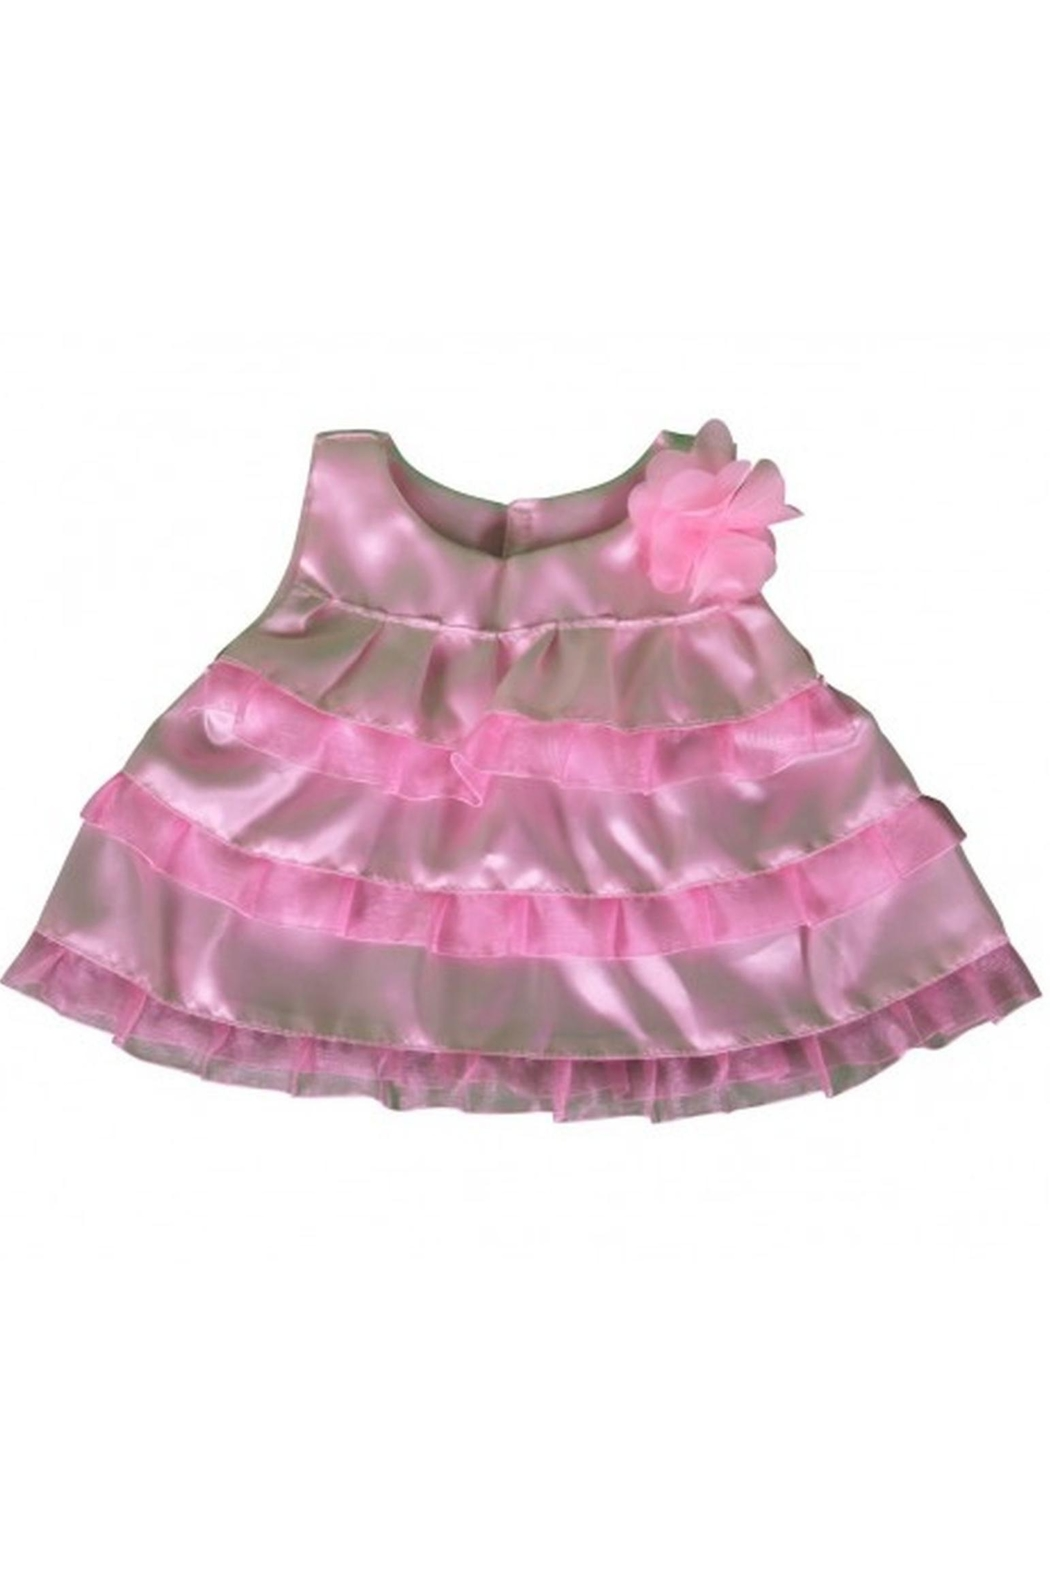 Cuddles and Friends Teddy Pink Dress - Main Image